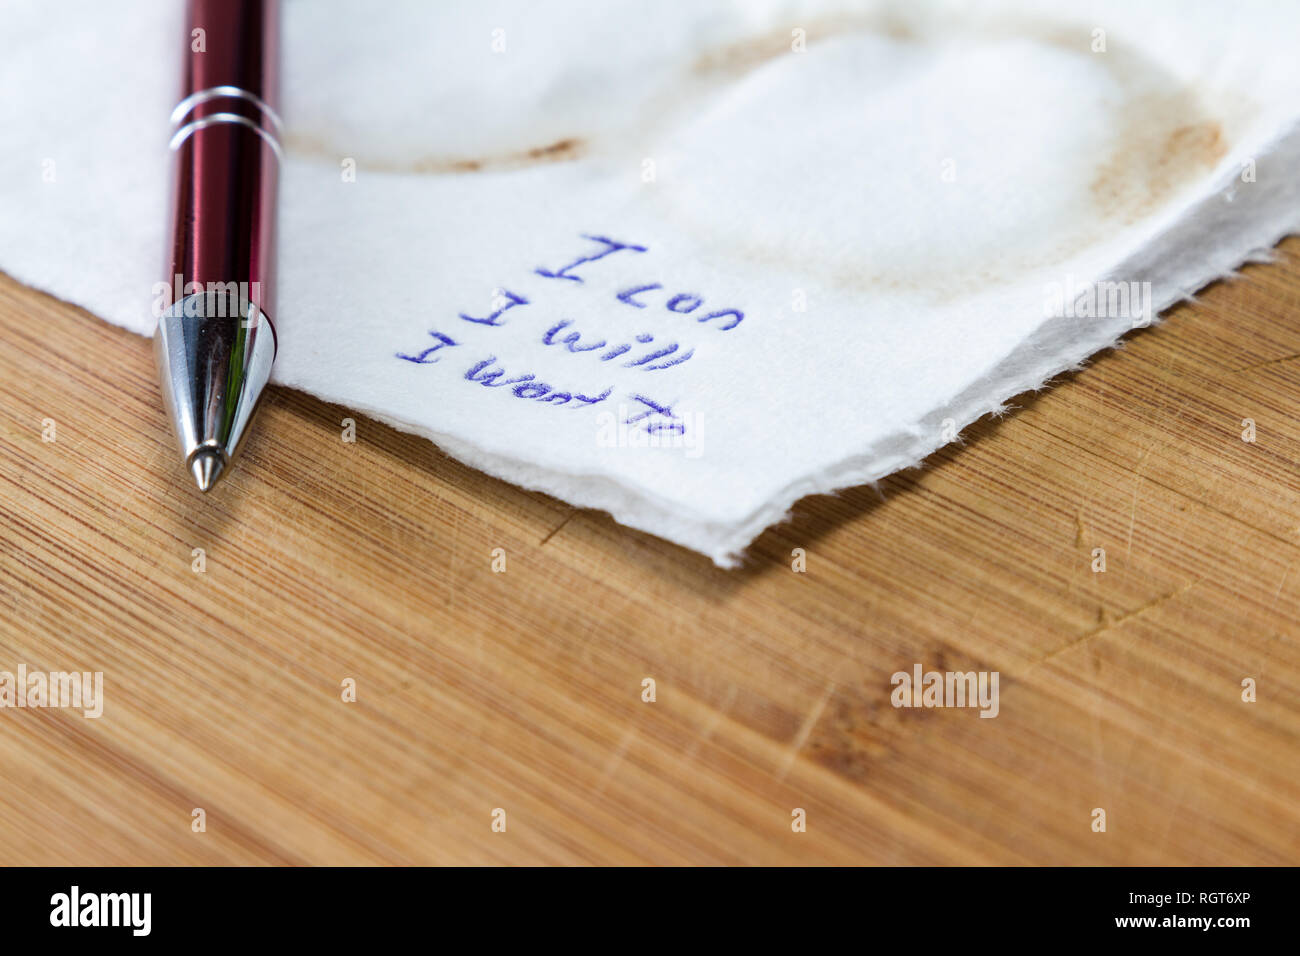 hand written note on a coffee stained napkin with an empowering message, I can I will I want to. Stock Photo